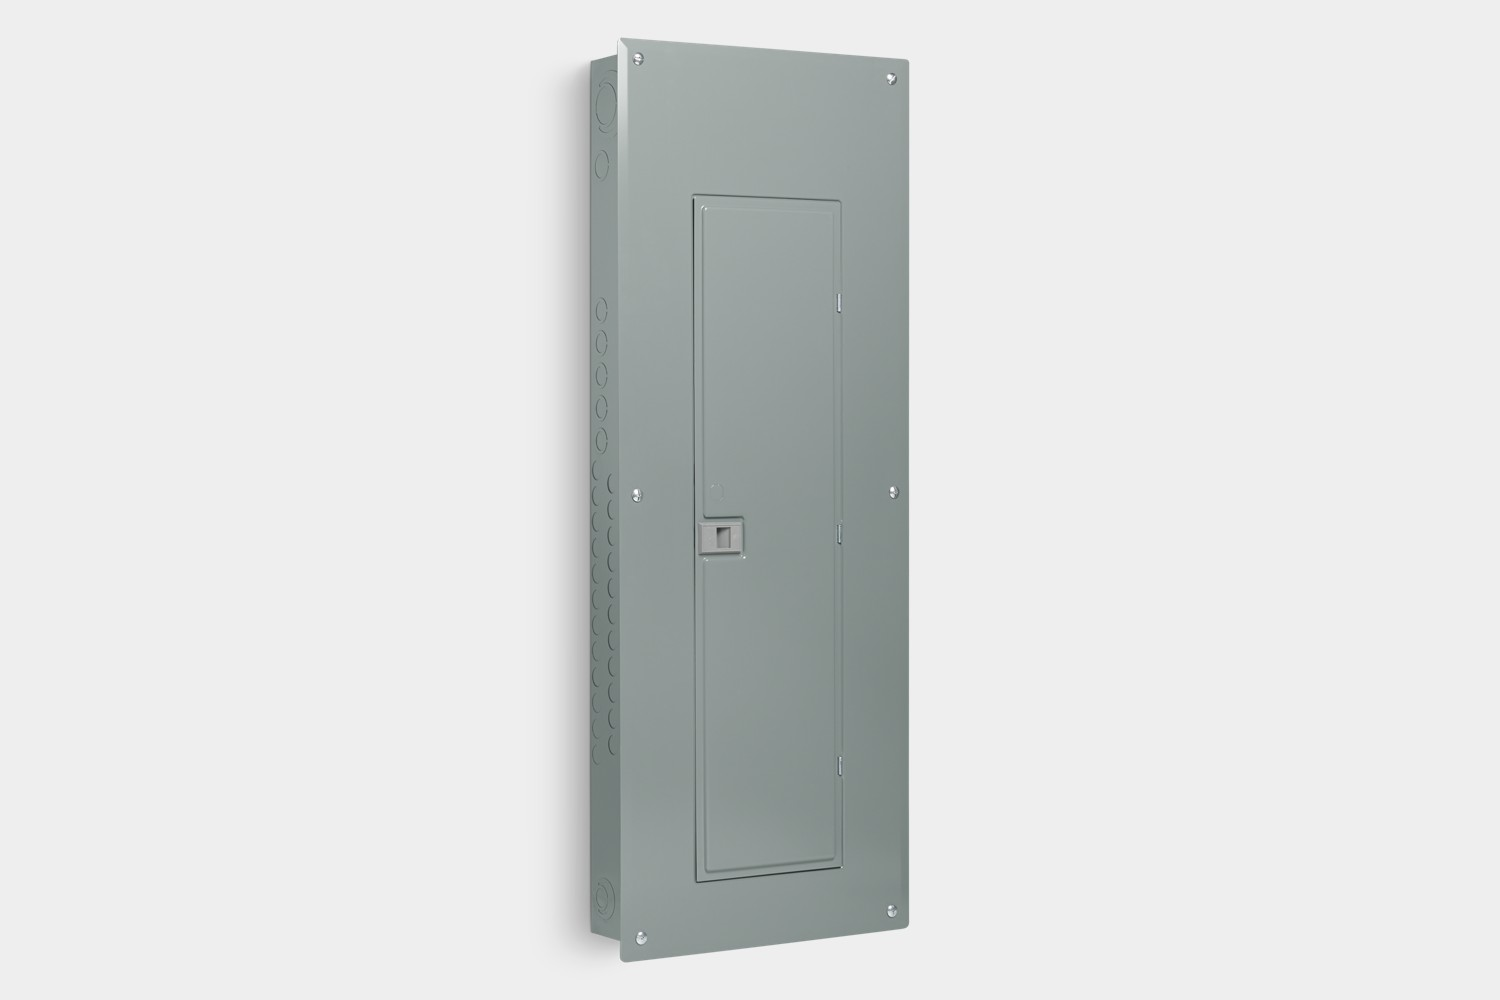 small resolution of 20resal with automatic transfer switch